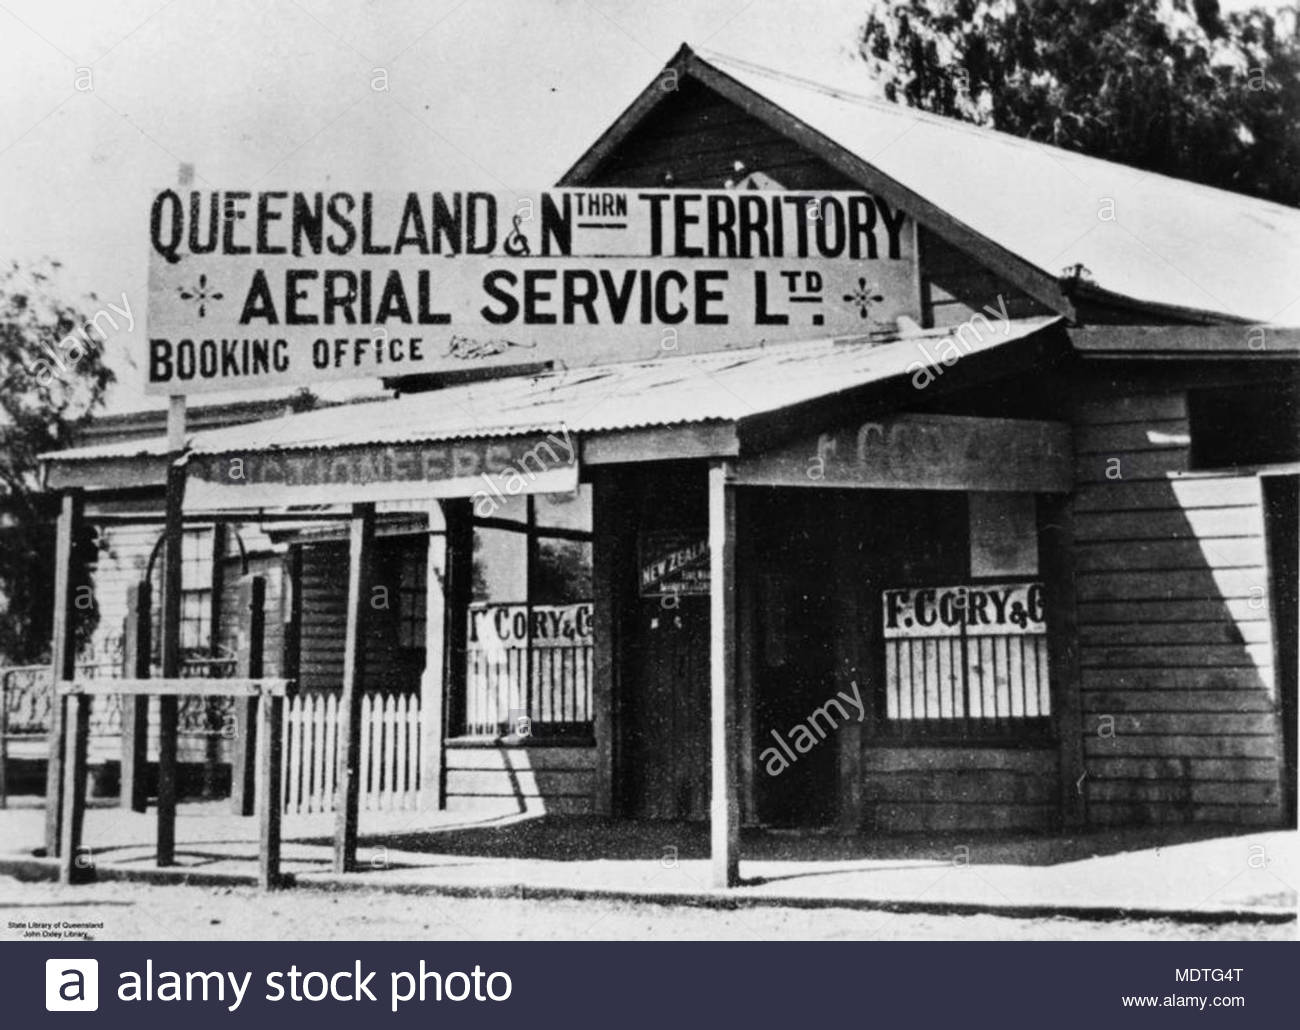 Early premises of QANTAS, in Longreach, Queensland. - Stock Image